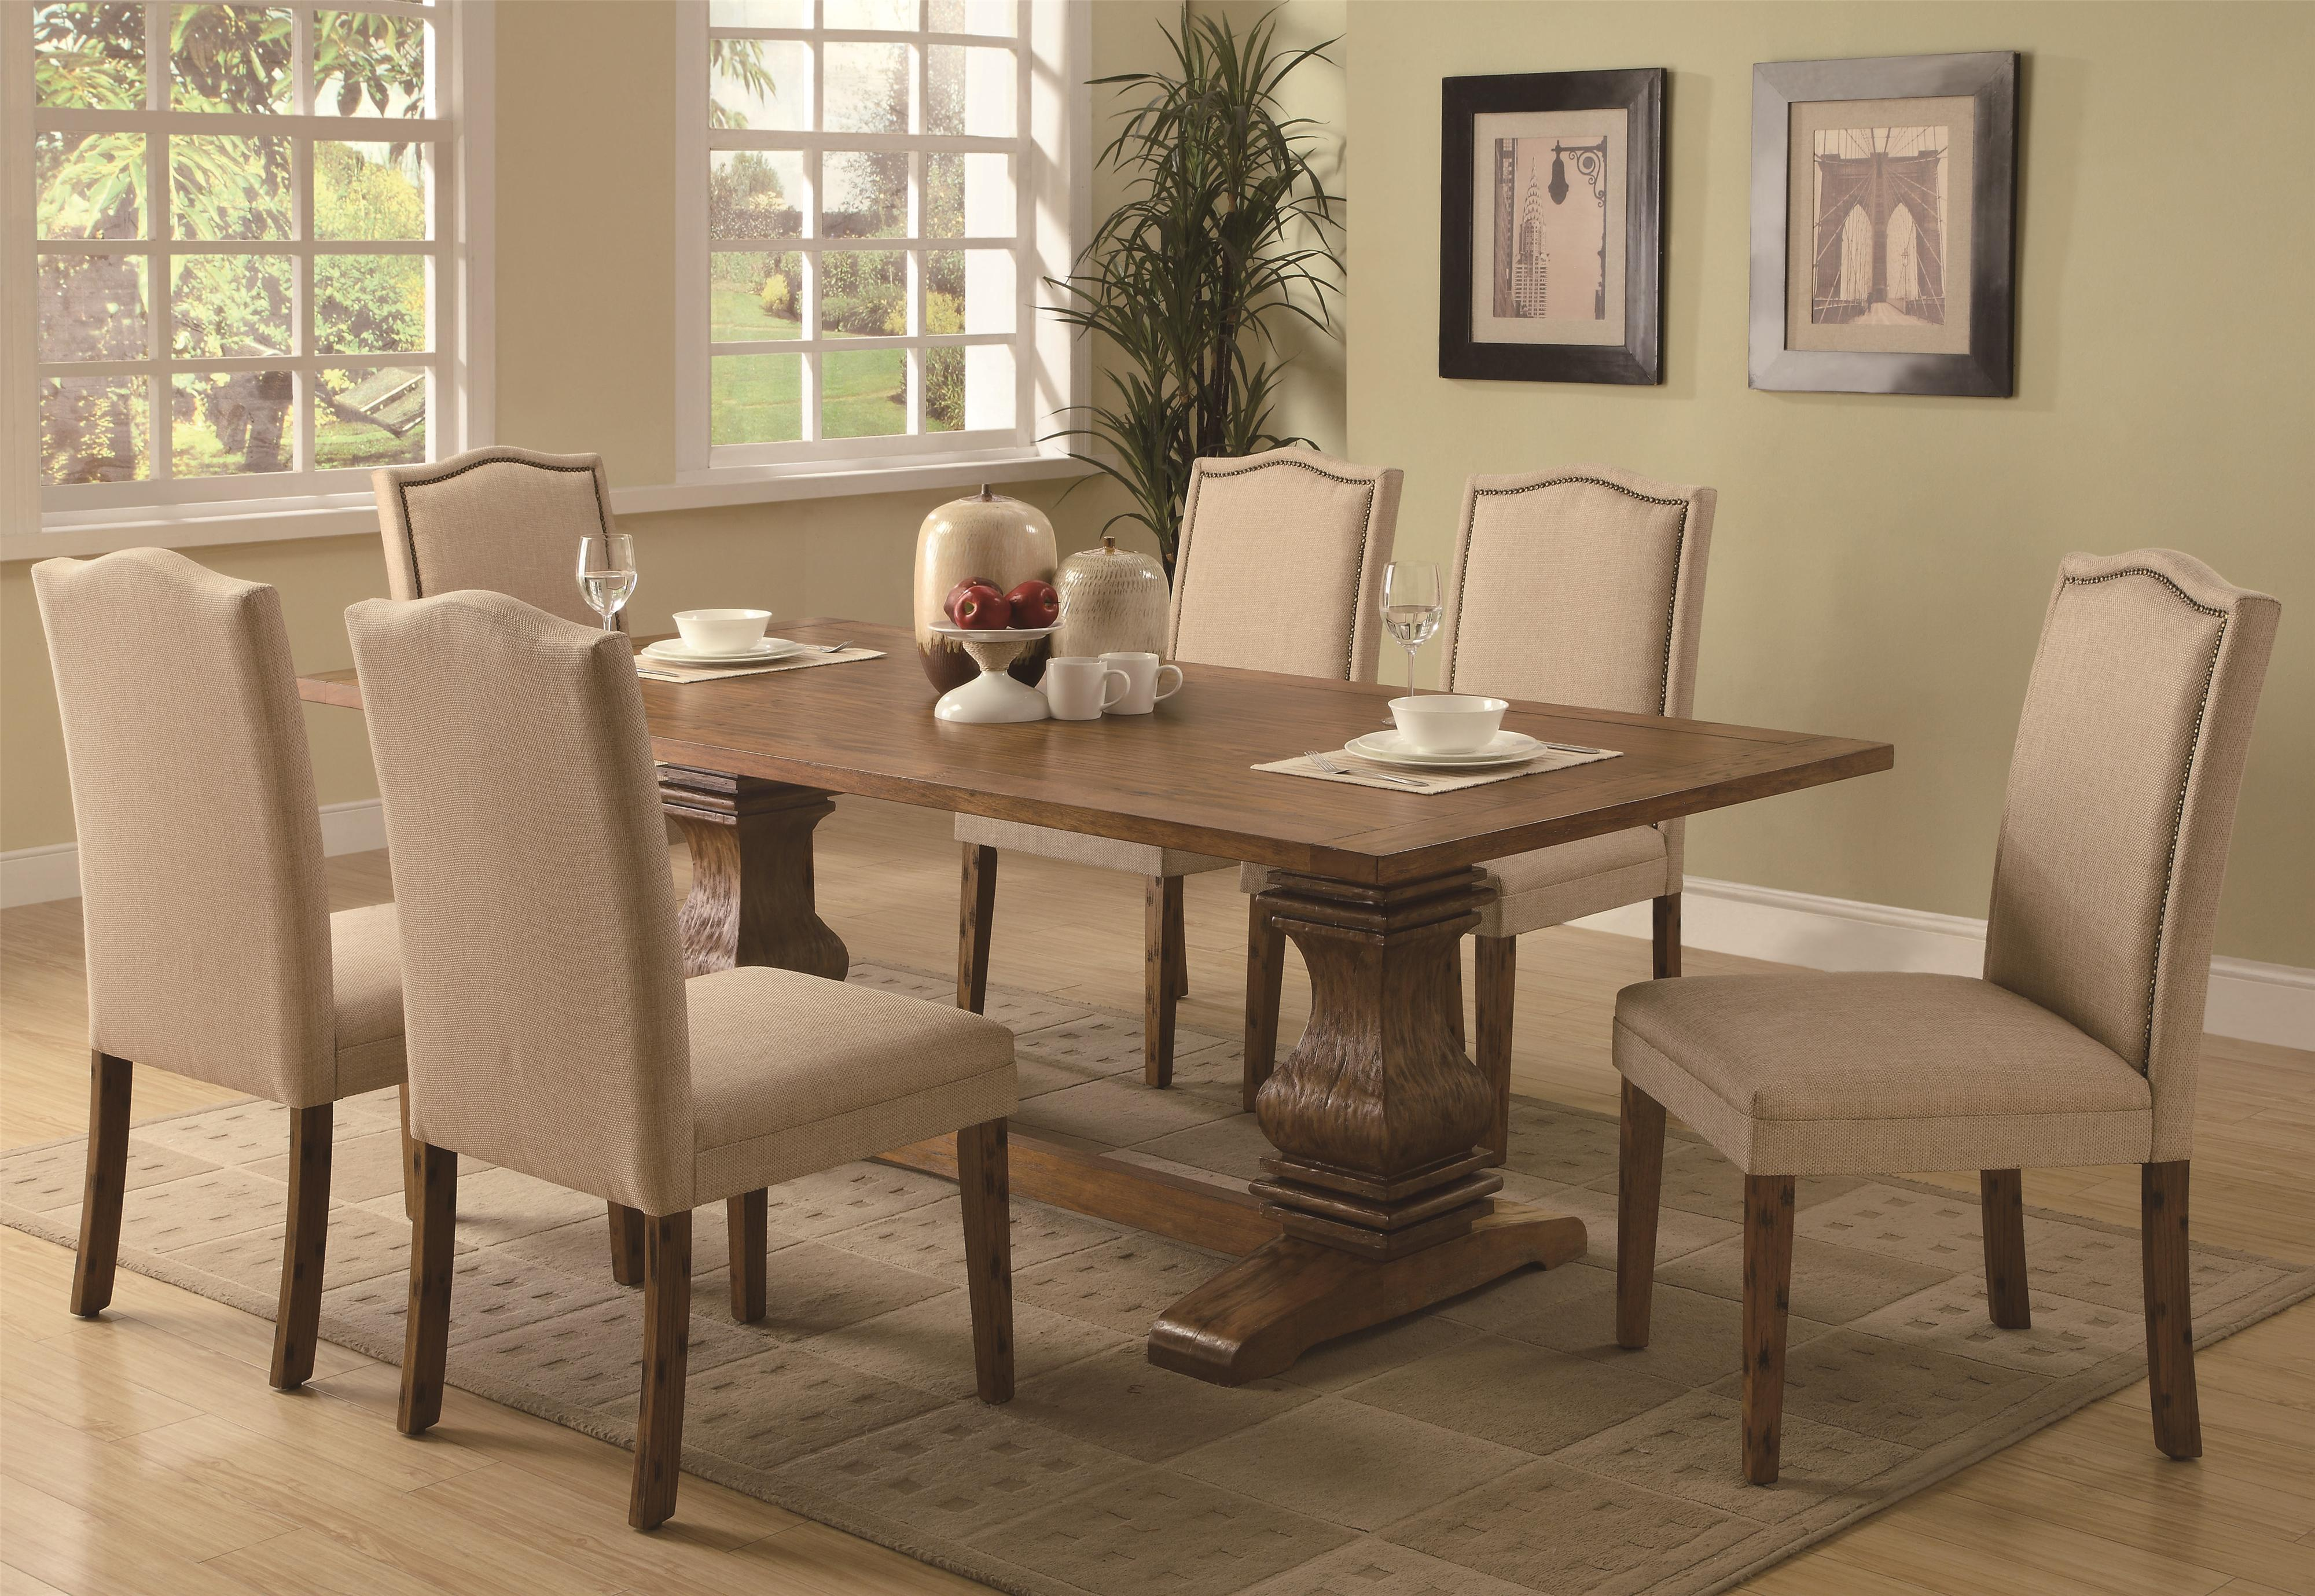 Coaster Parkins Dining Table with Shaped Double Pedestals   Coaster     Coaster Parkins Dining Table with Shaped Double Pedestals   Coaster Fine  Furniture